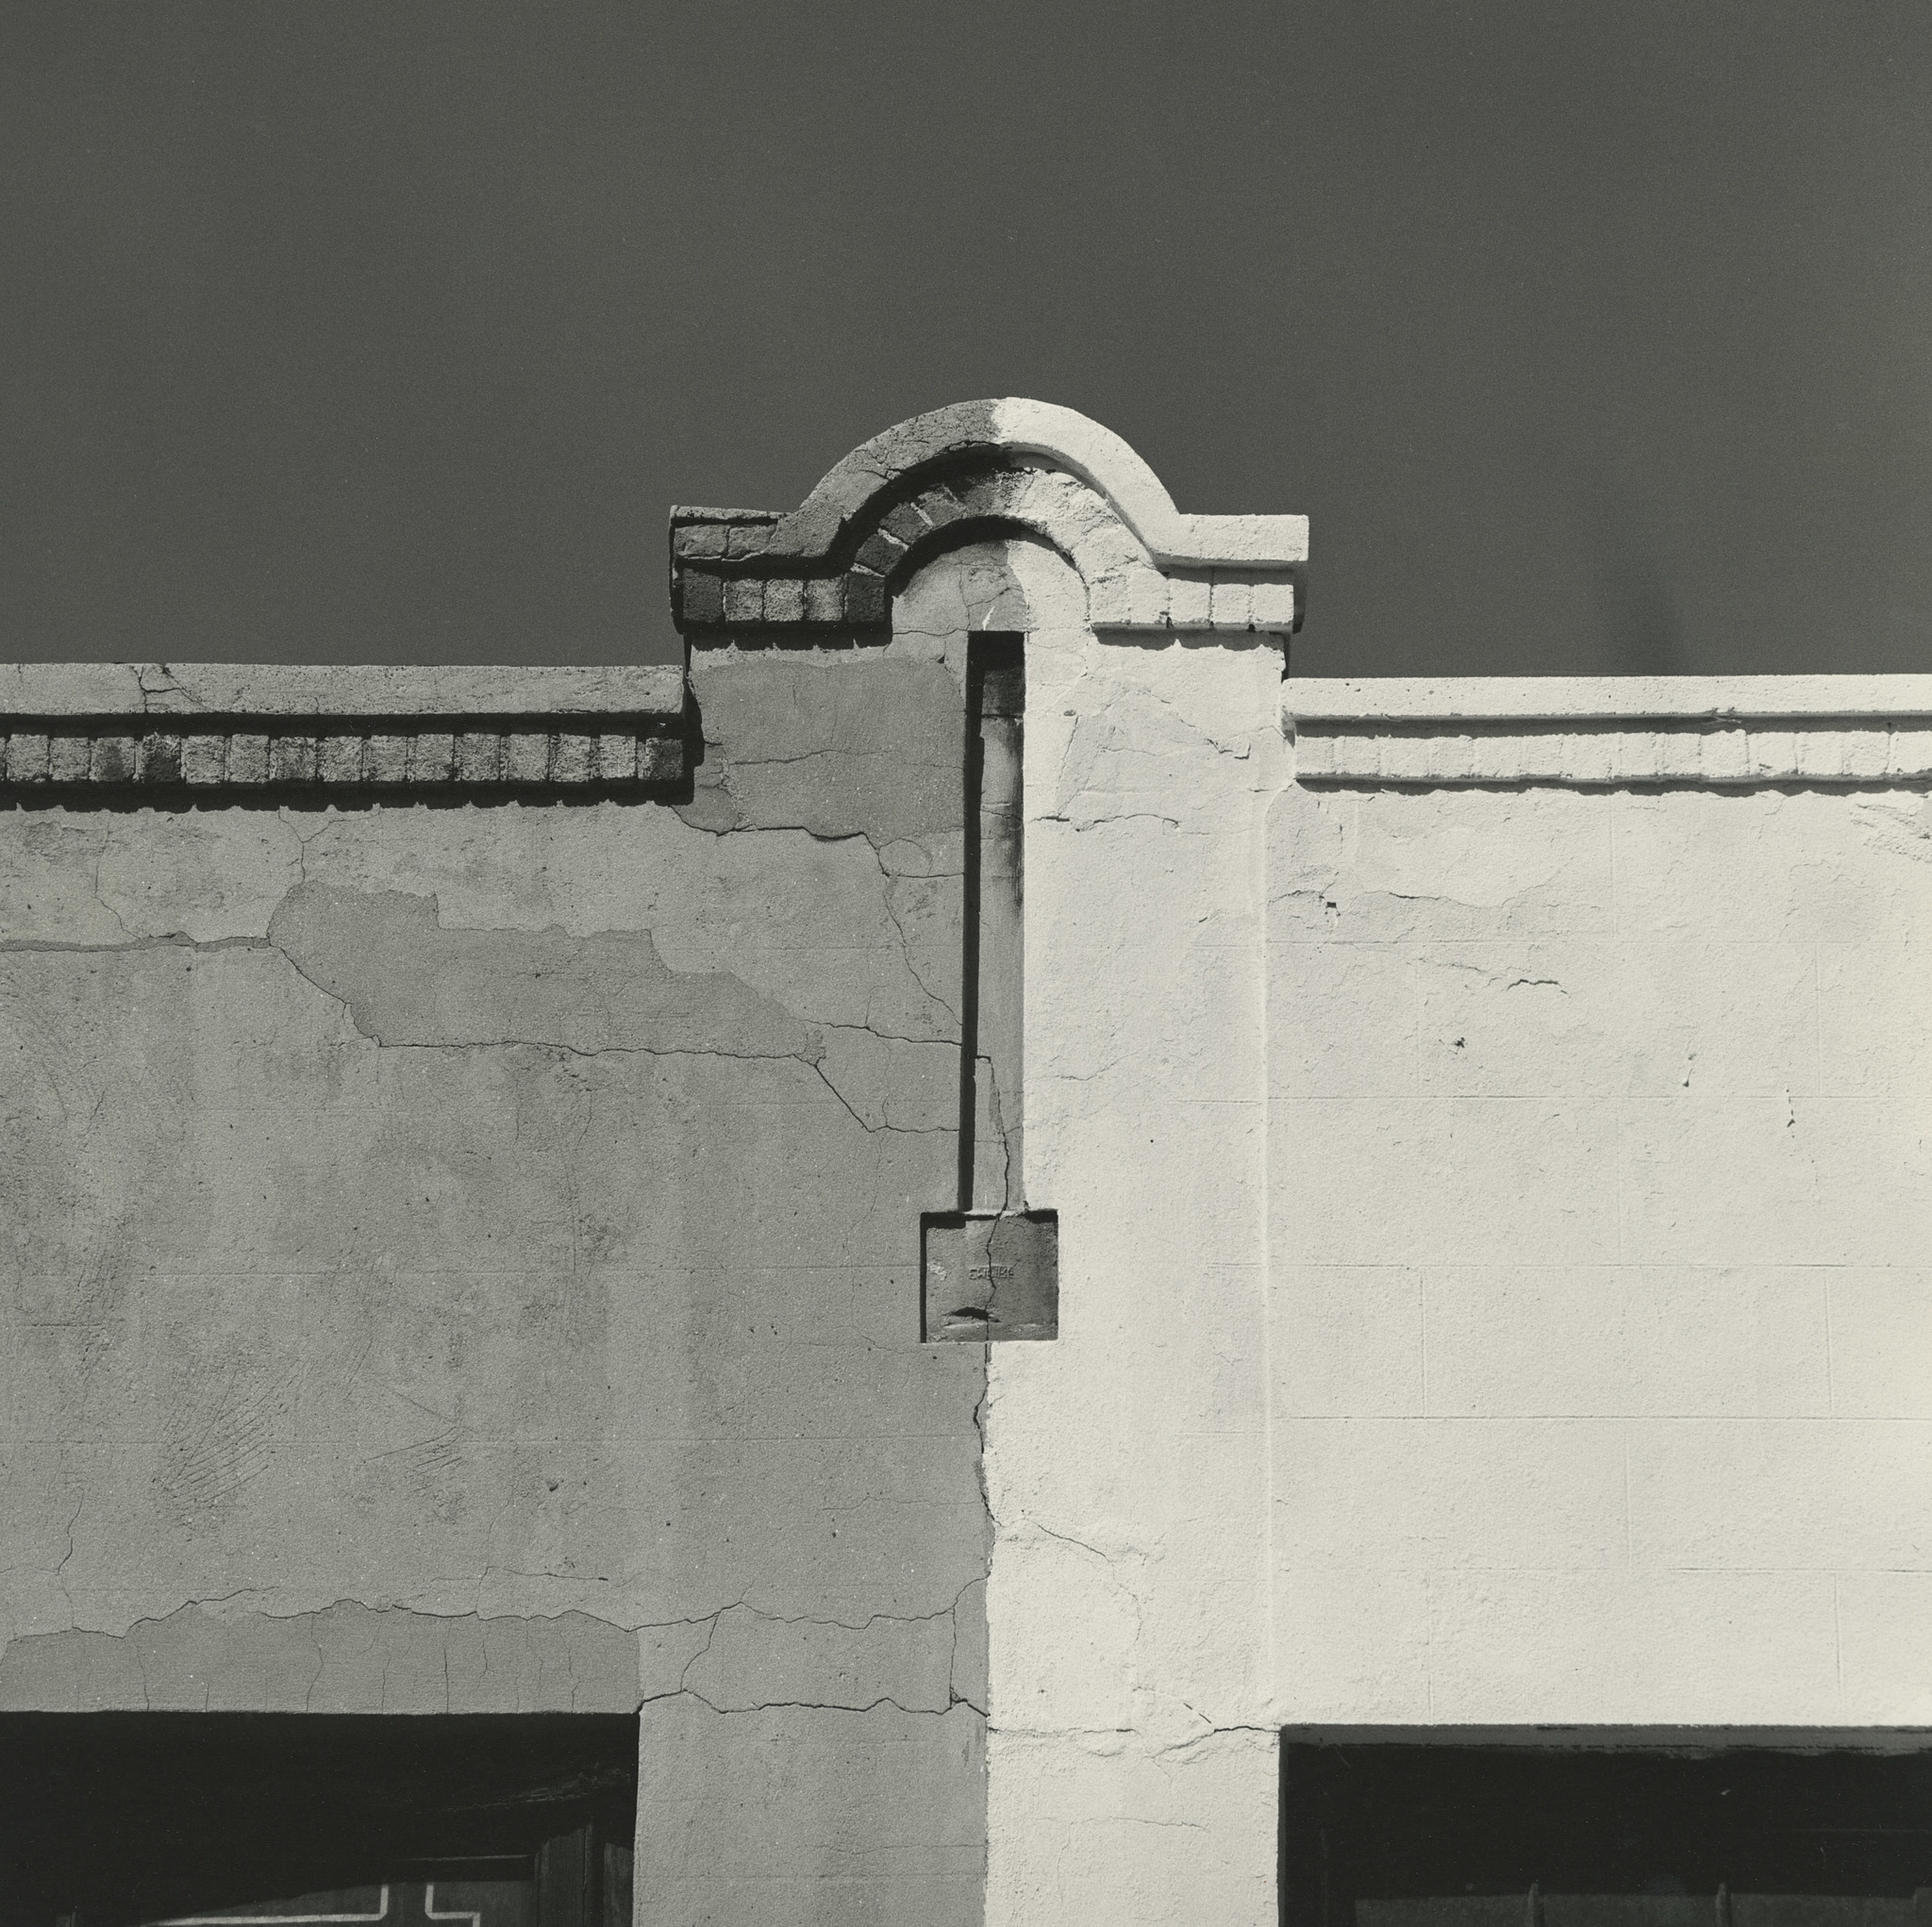 An architectural detail captured by photographer Mark Feldstein in the 1970s, part of an exhibition at Louis Stern Fine Arts in West Hollywood.